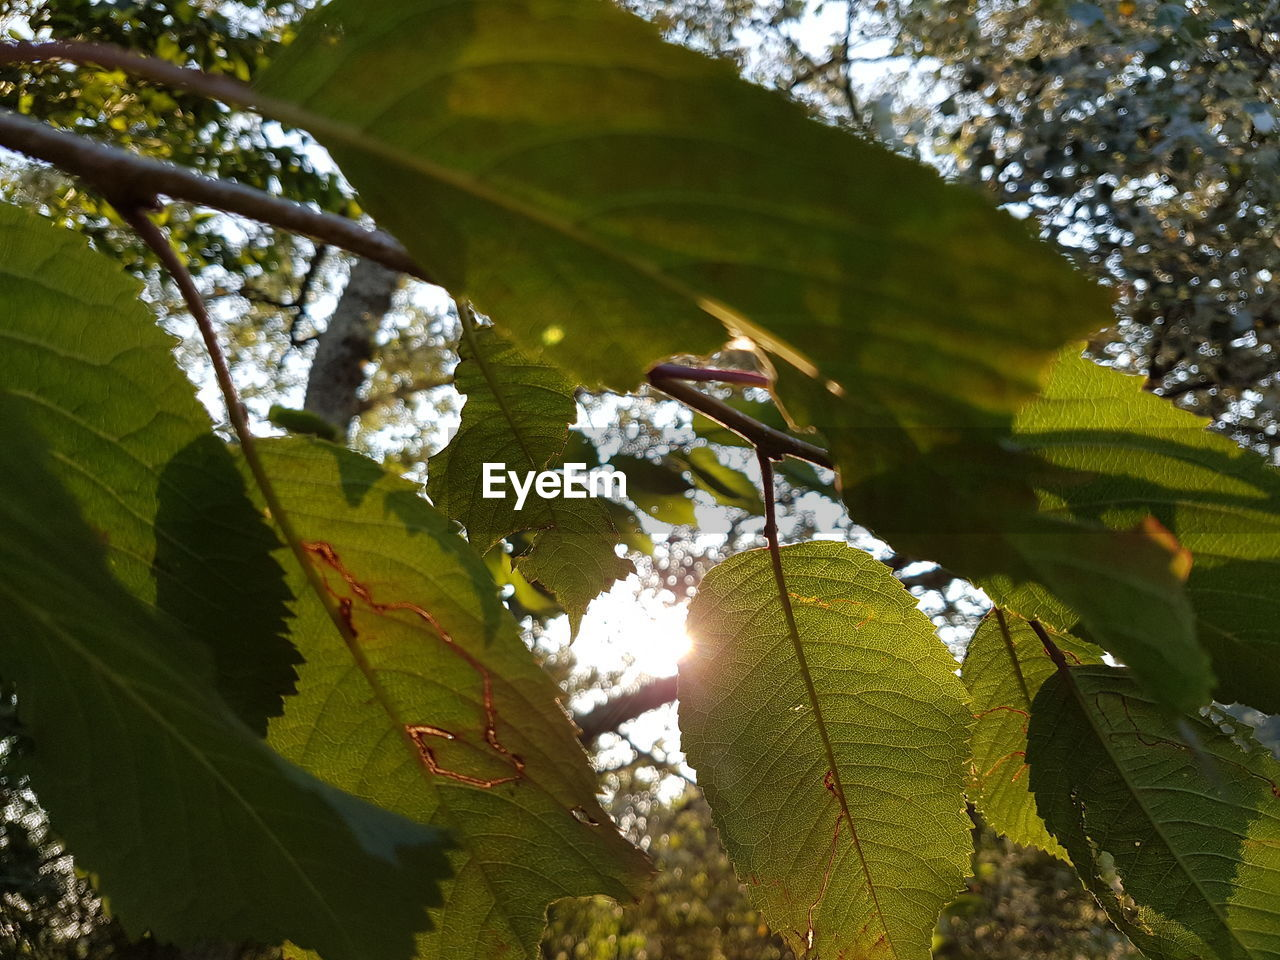 leaf, growth, nature, green color, day, low angle view, tree, beauty in nature, sunlight, no people, outdoors, branch, close-up, freshness, fragility, sky